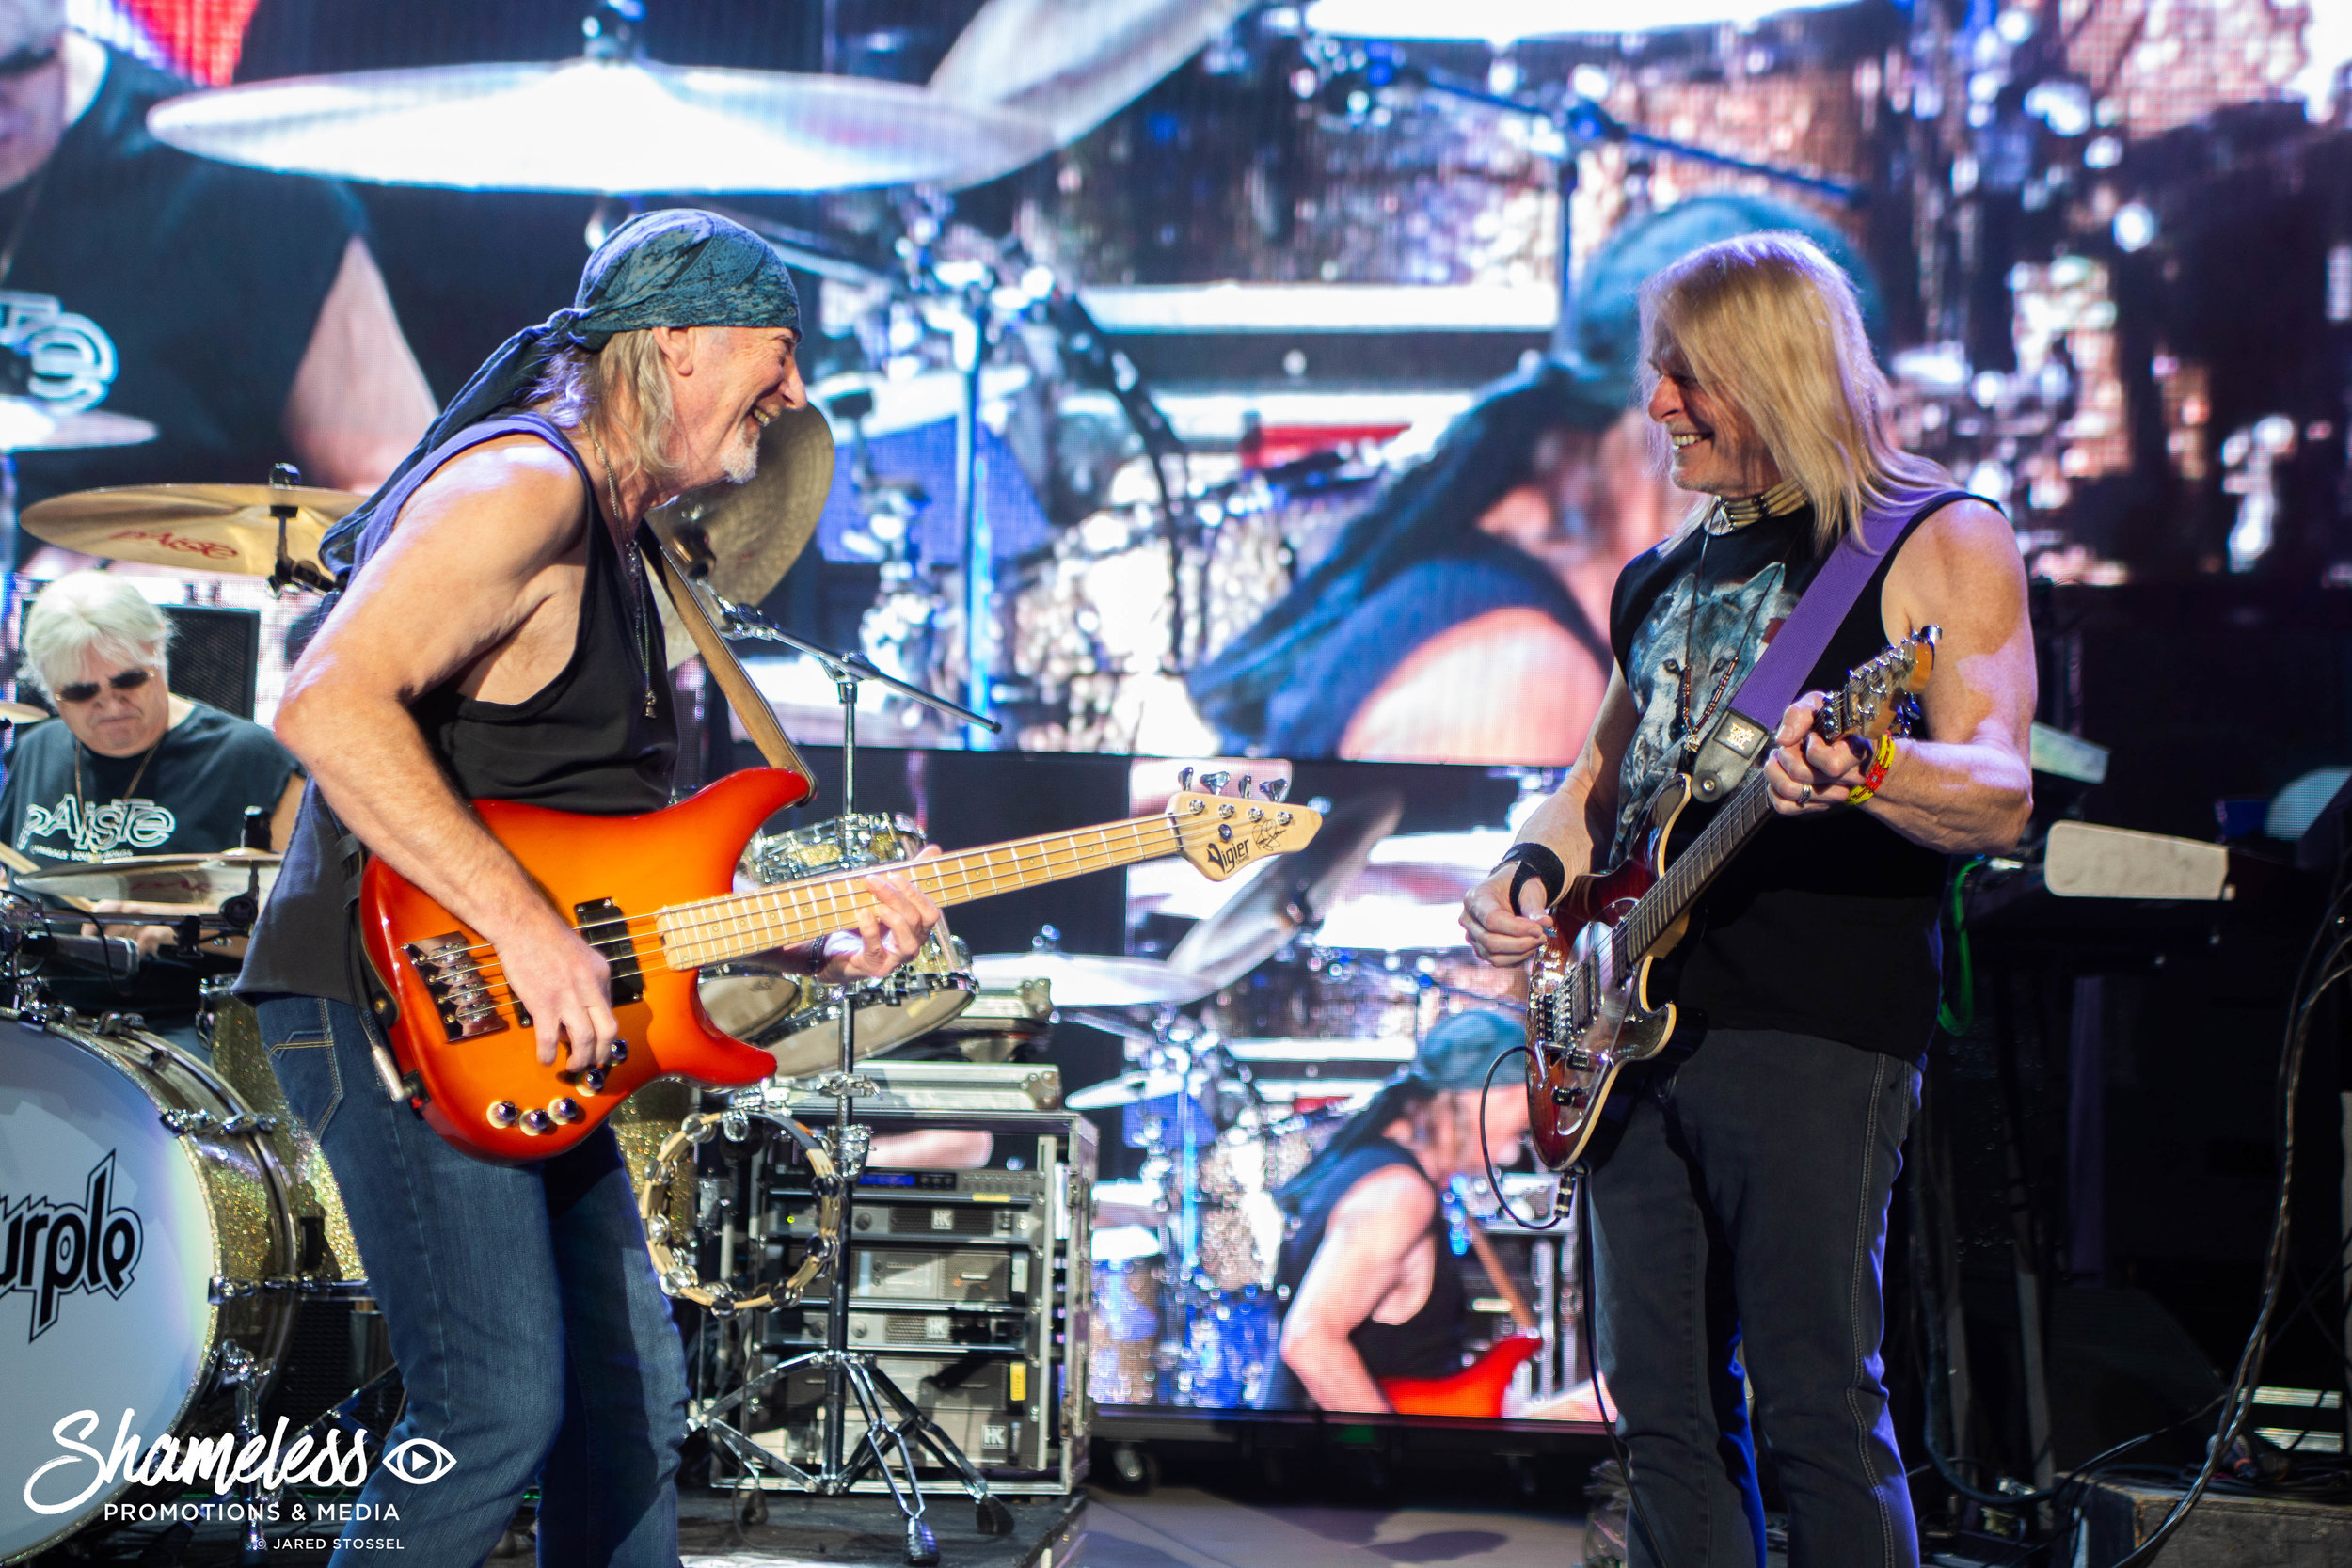 Deep Purple performing at Shoreline Amphitheatre in Mountain View, CA on September 29, 2018. Photo Credit: Jared Stossel